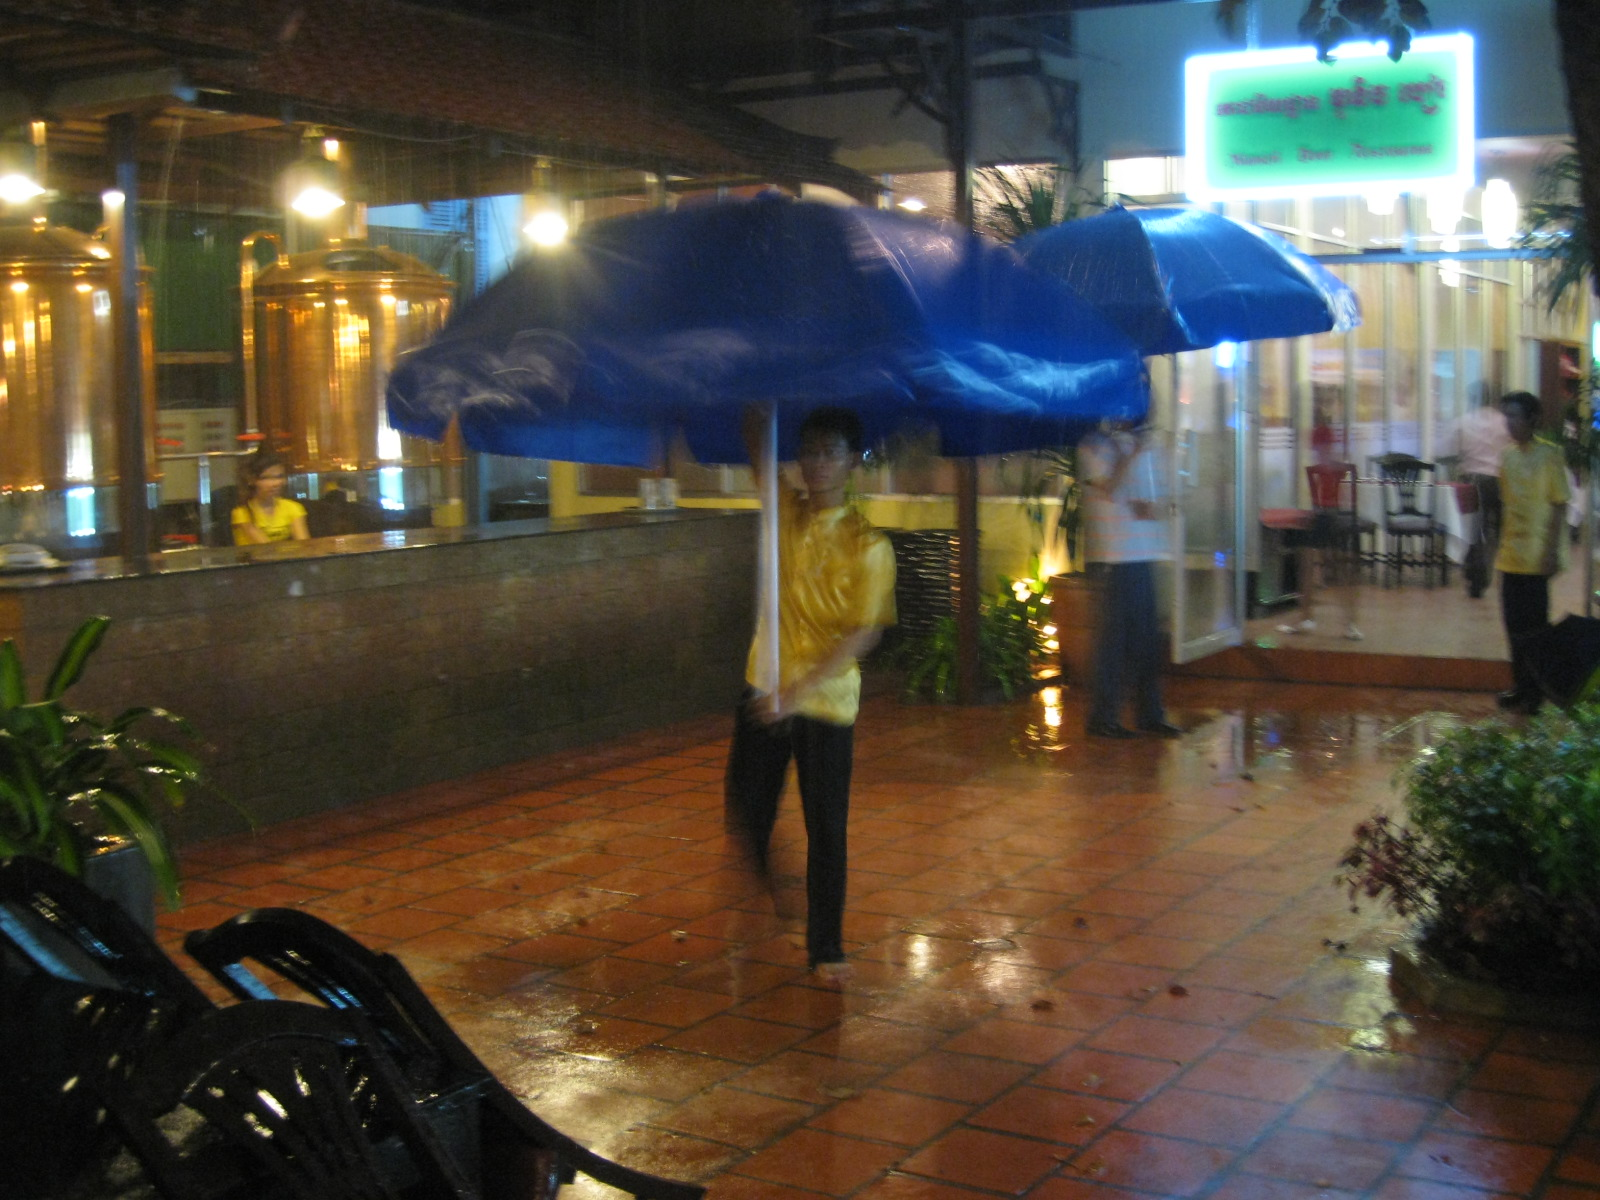 Multi-purpose table umbrellas, I knew I should've packed one.